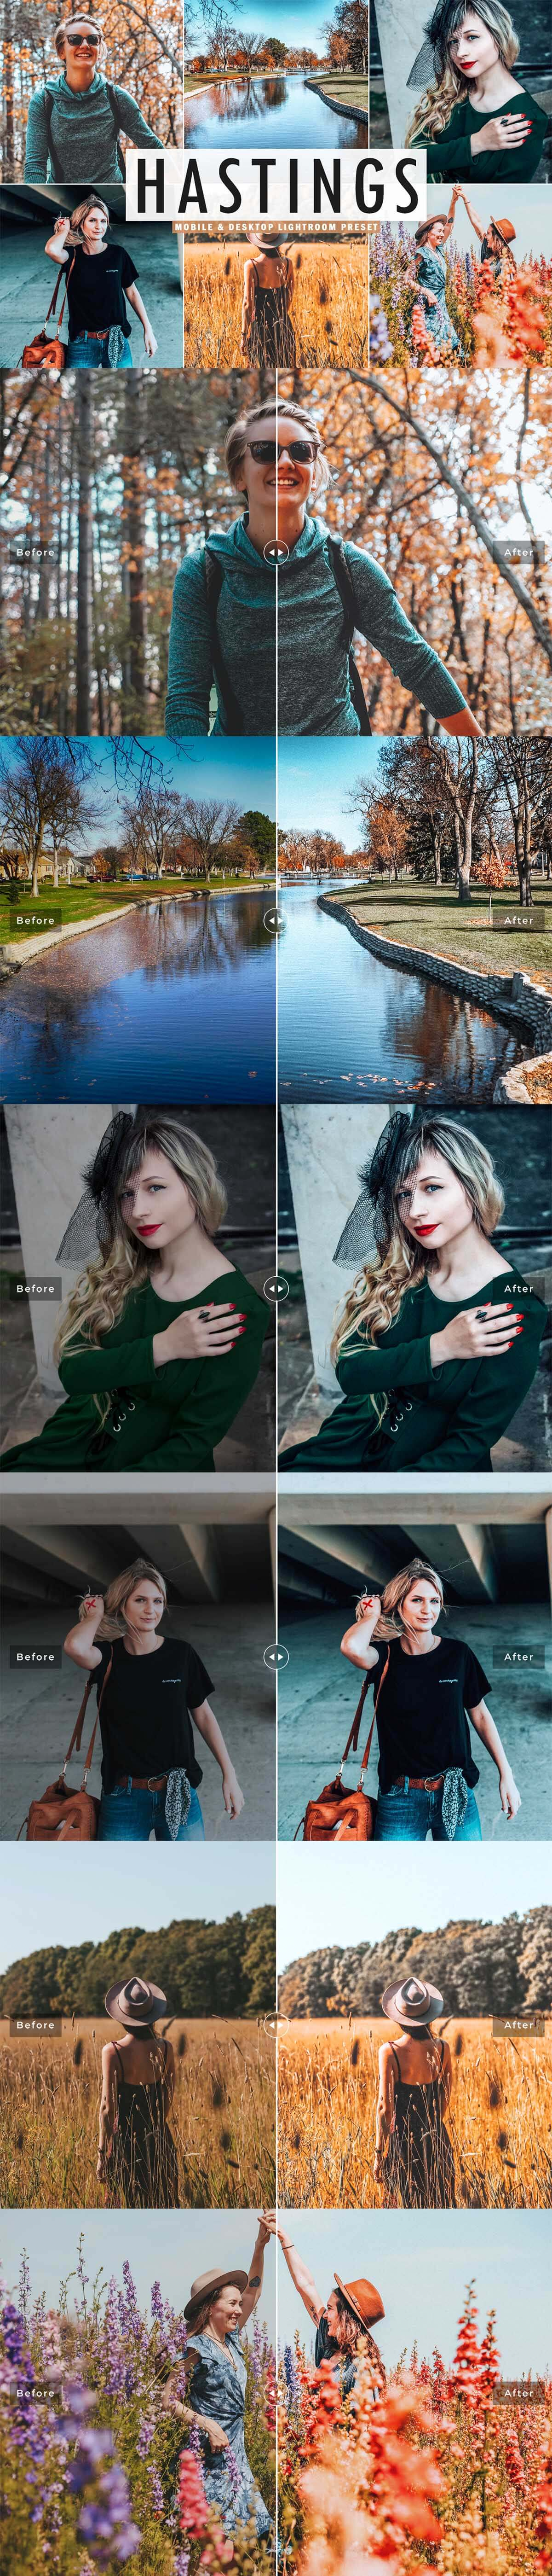 Free Hastings Lightroom Preset